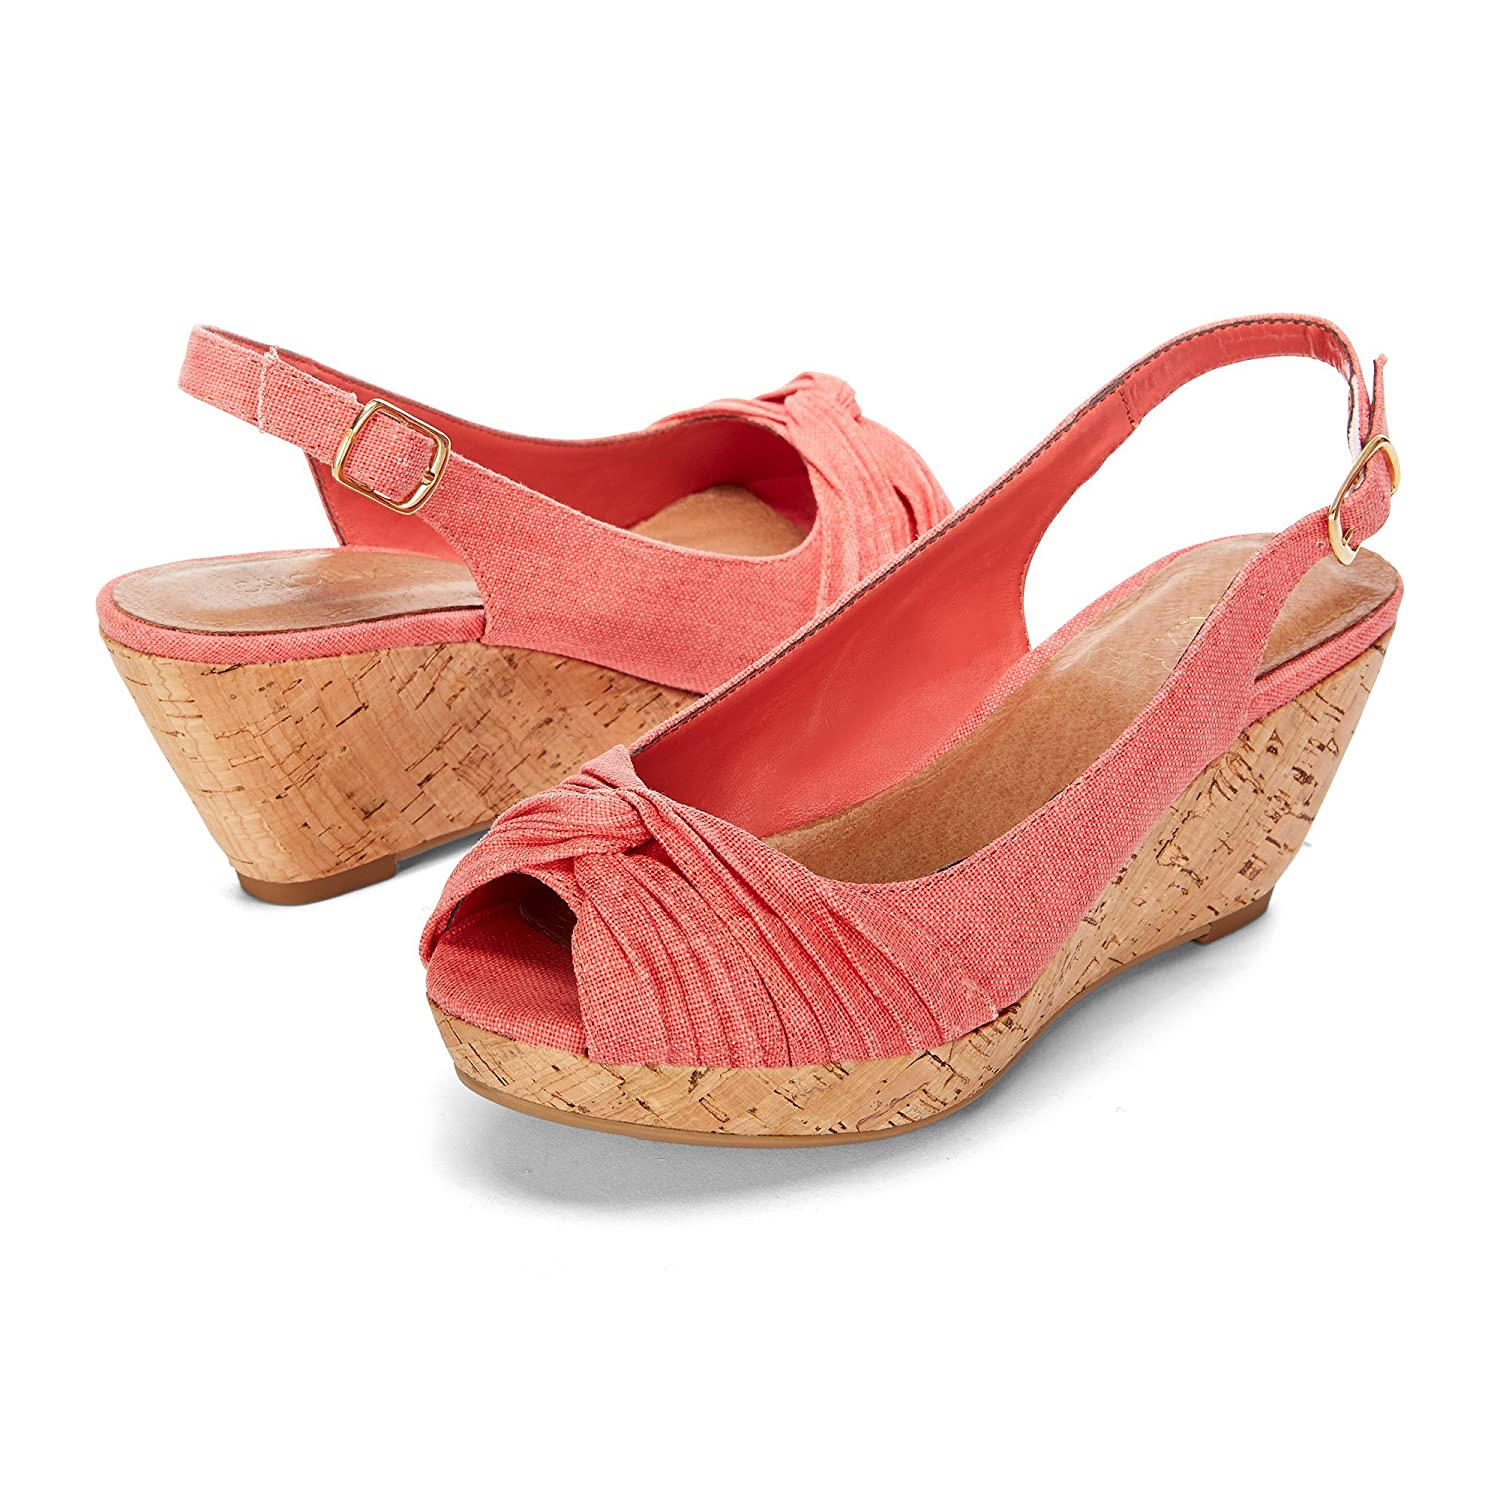 Yellow Shoes Deluxe Womens Wedge Sandals - Casual & Comfortable & Fashion - Made from Genuine Cork with Memory Foam - Perfect for Summer